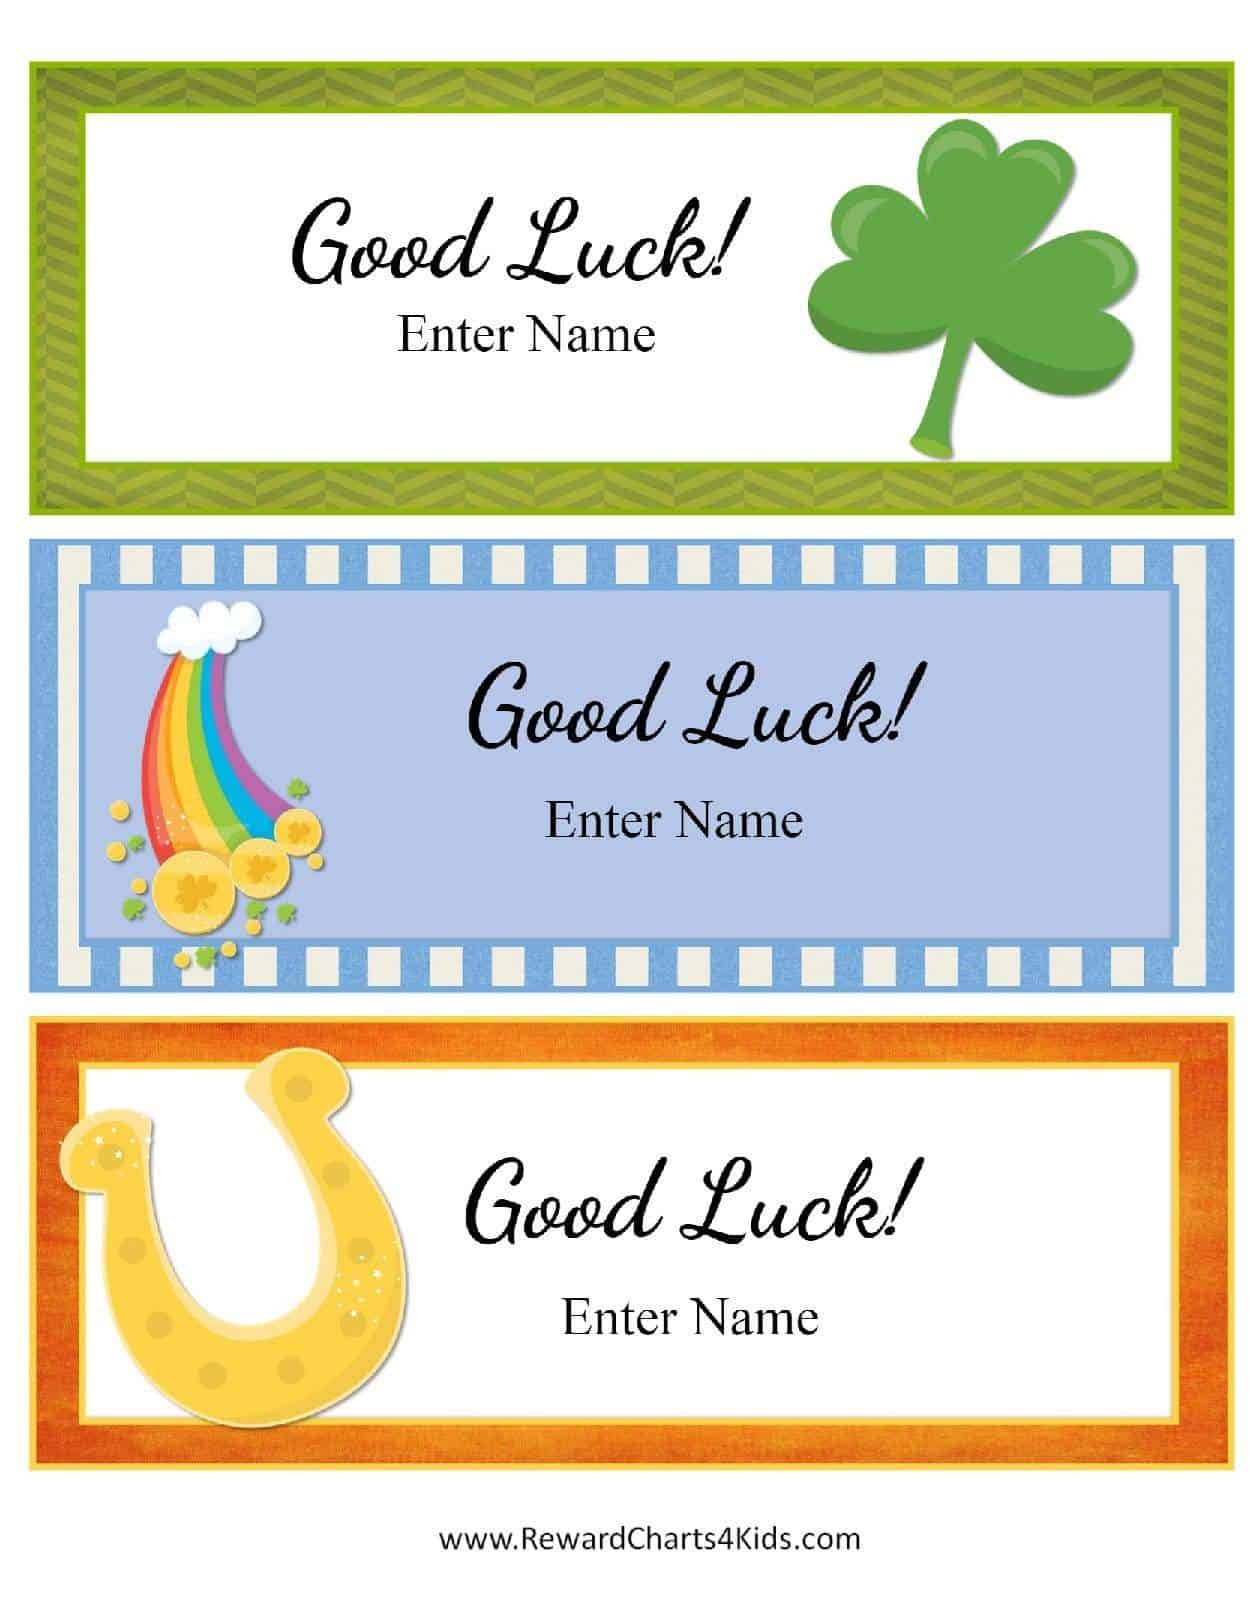 Free Good Luck Cards For Kids | Customize Online & Print At Home - Free Printable Good Luck Cards